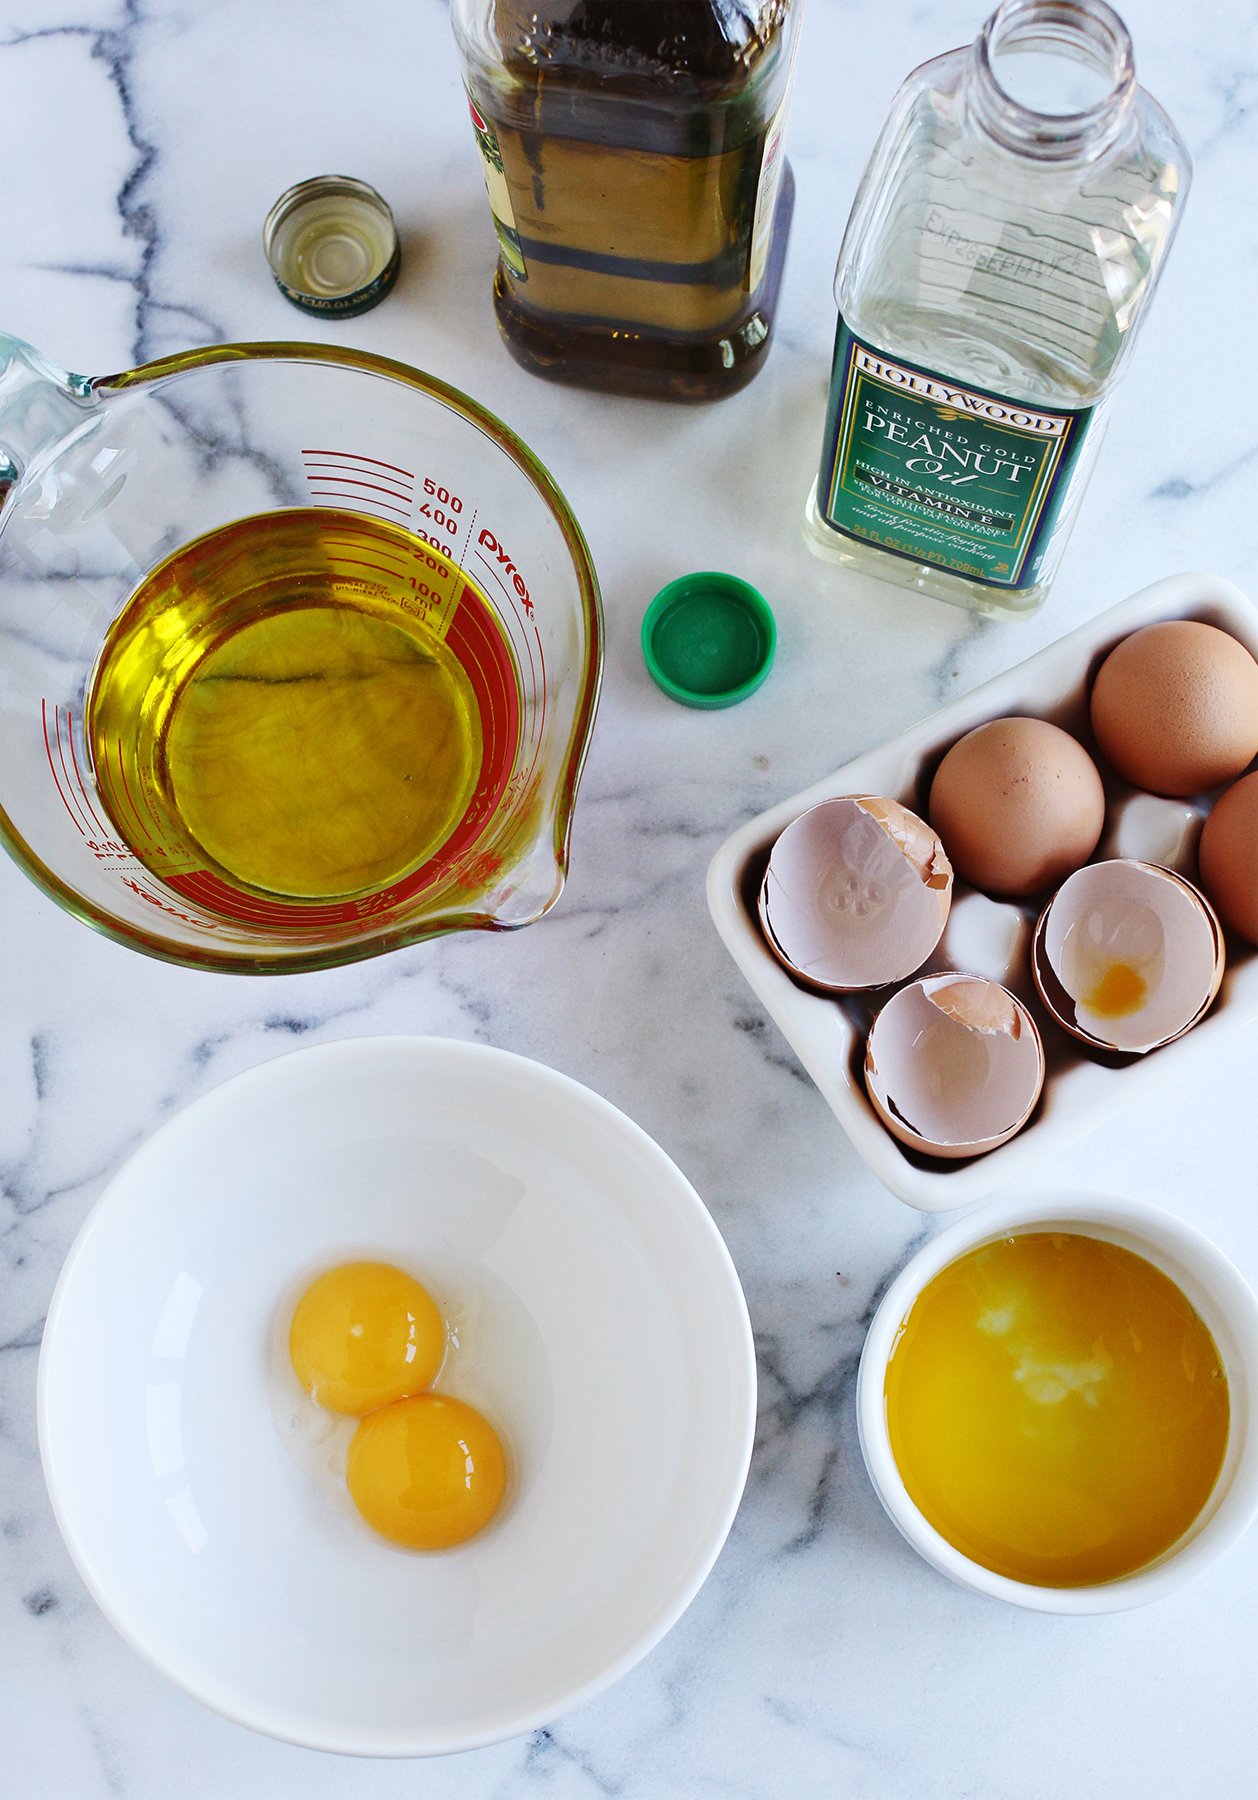 ... olive oil in place of some of the plainer oils to give your mayo a